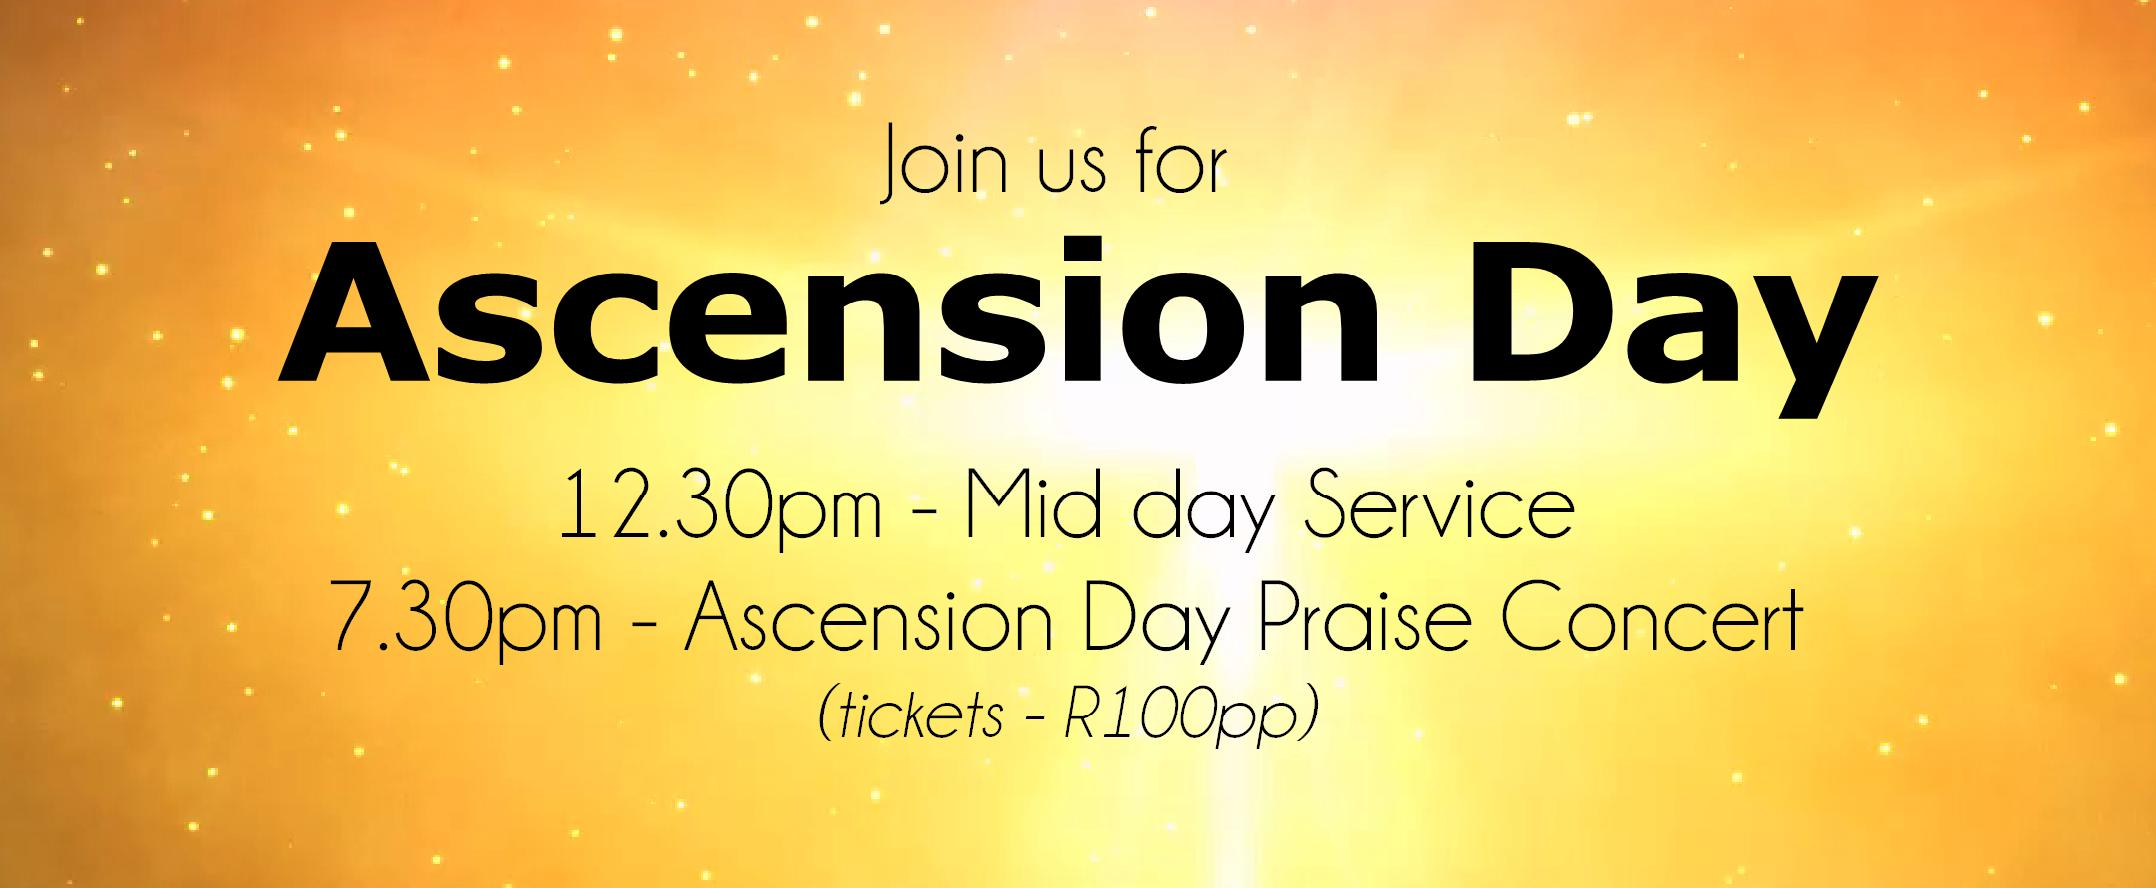 2017 Ascension Day services